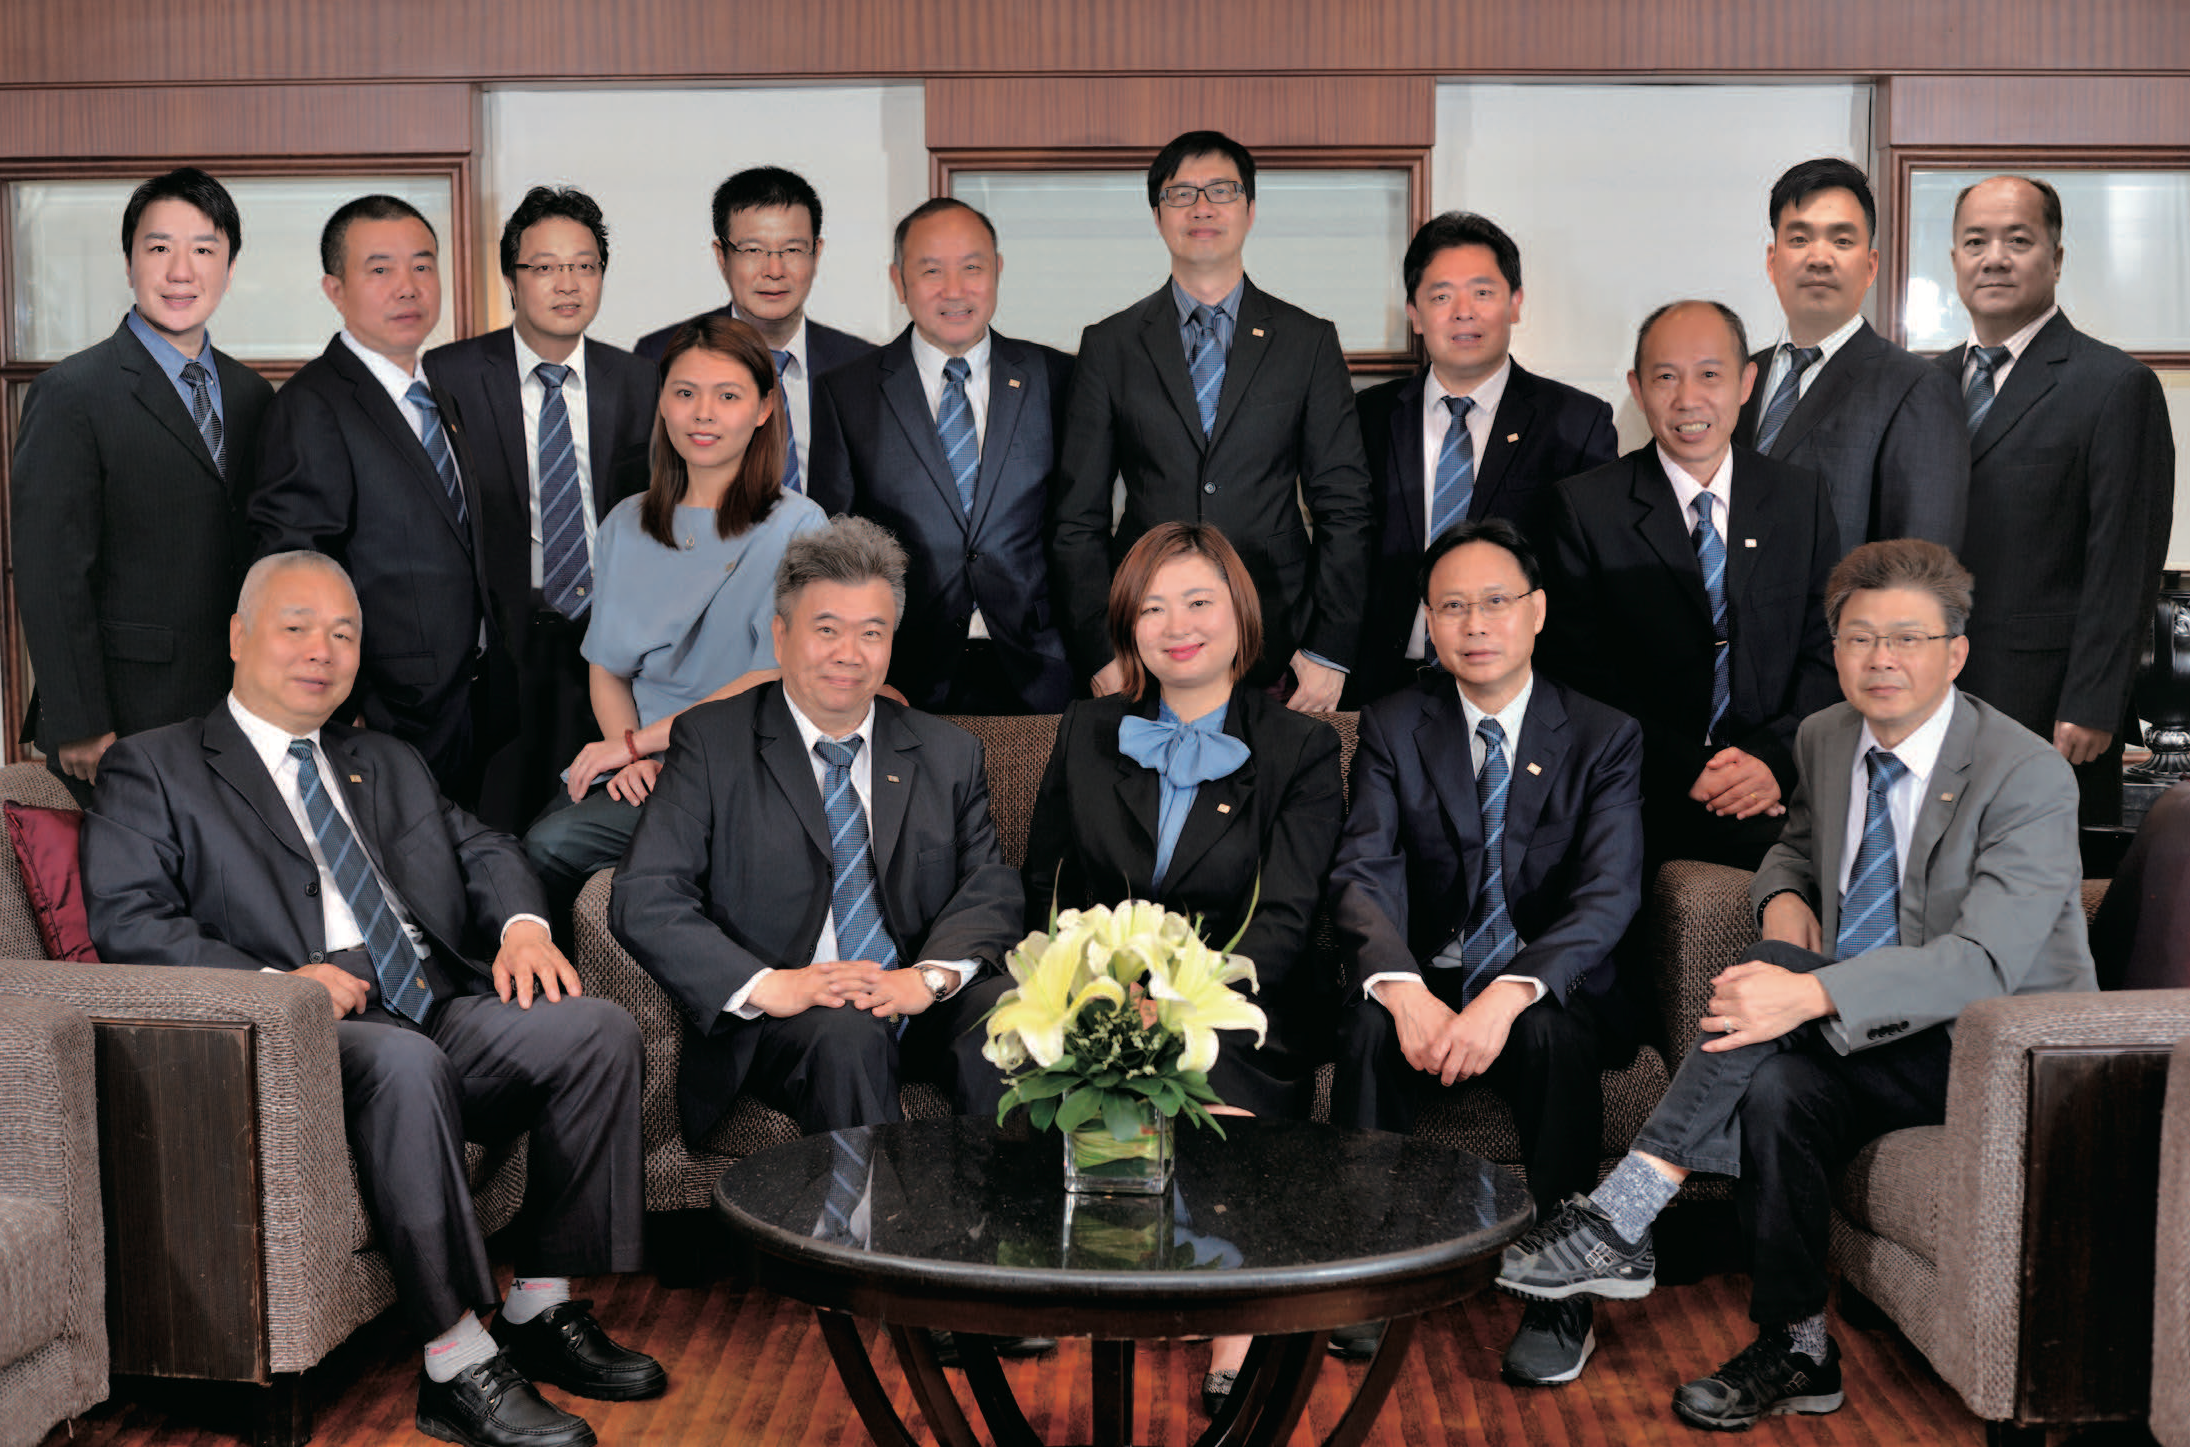 Group Photo of Executive Committee Members